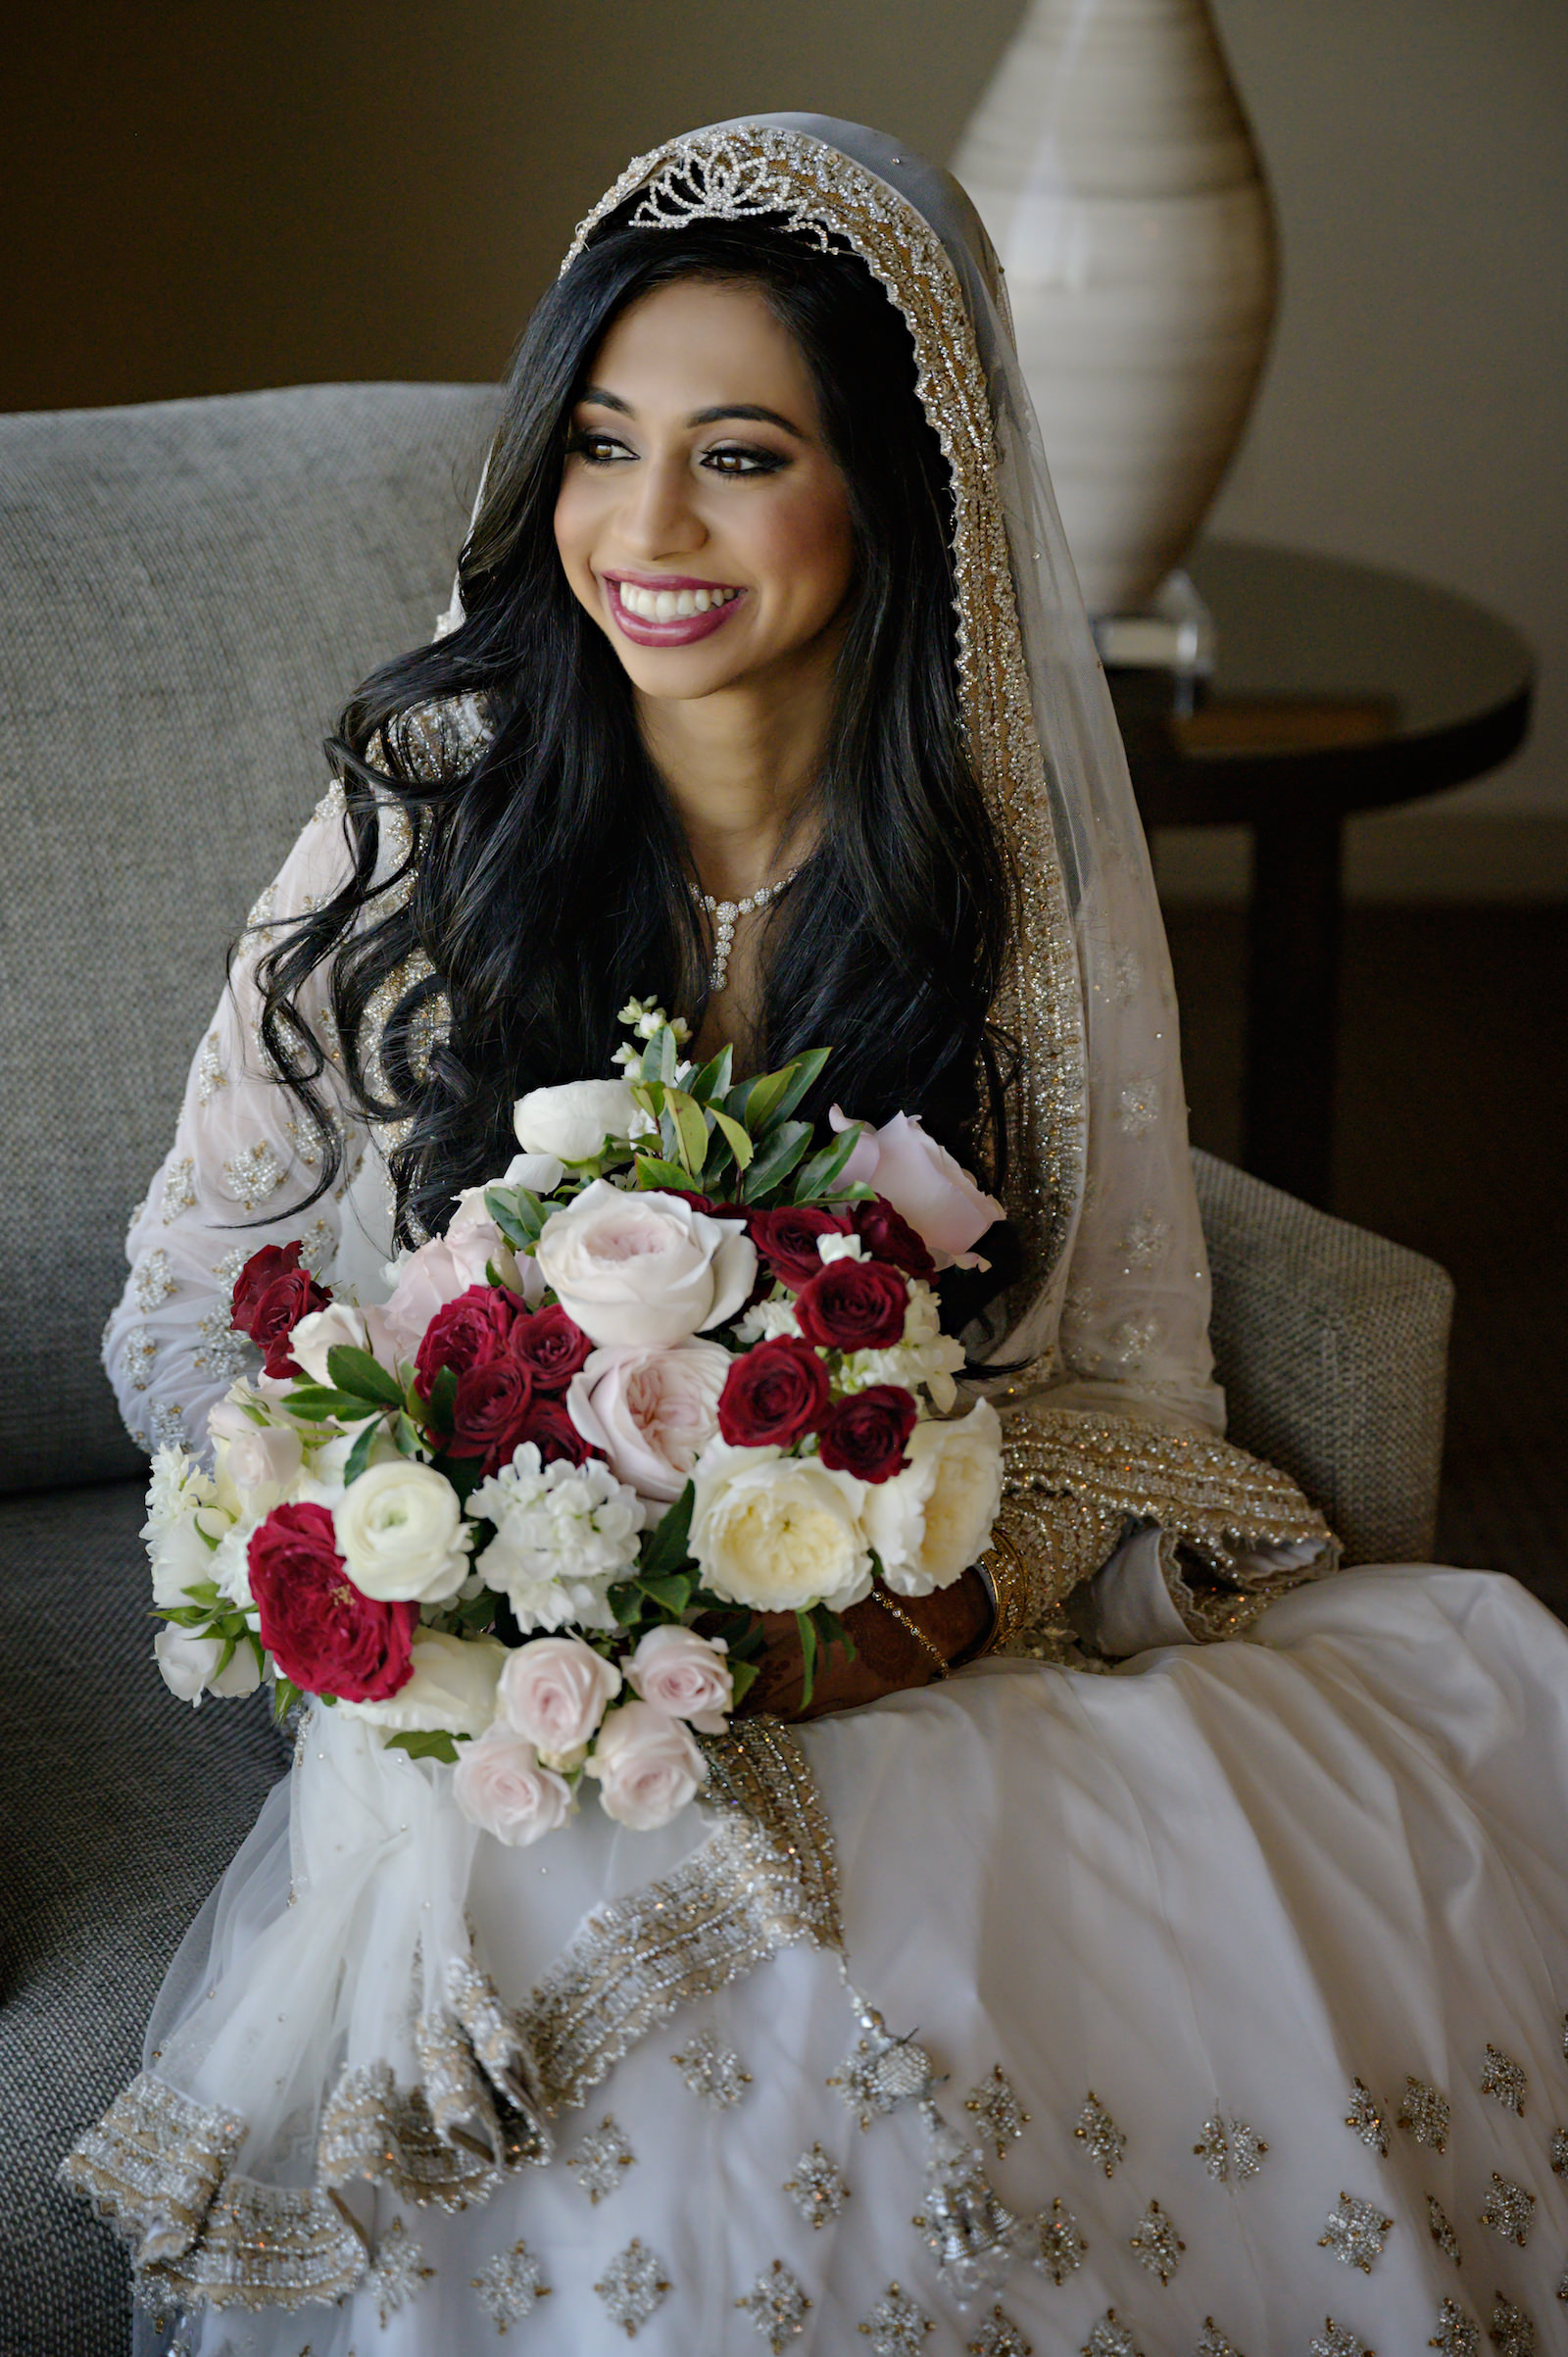 Florida Indian Bridal Portrait, Tampa Bay Bride in MultiCultural Fusion Wedding Dress, White and Gold Veil, Holding Romantic Bouquet with Red, Pink, and Ivory Roses Floral Bouquet | Florida Indian Wedding Hair and Makeup Artist Michele Renee The Studio